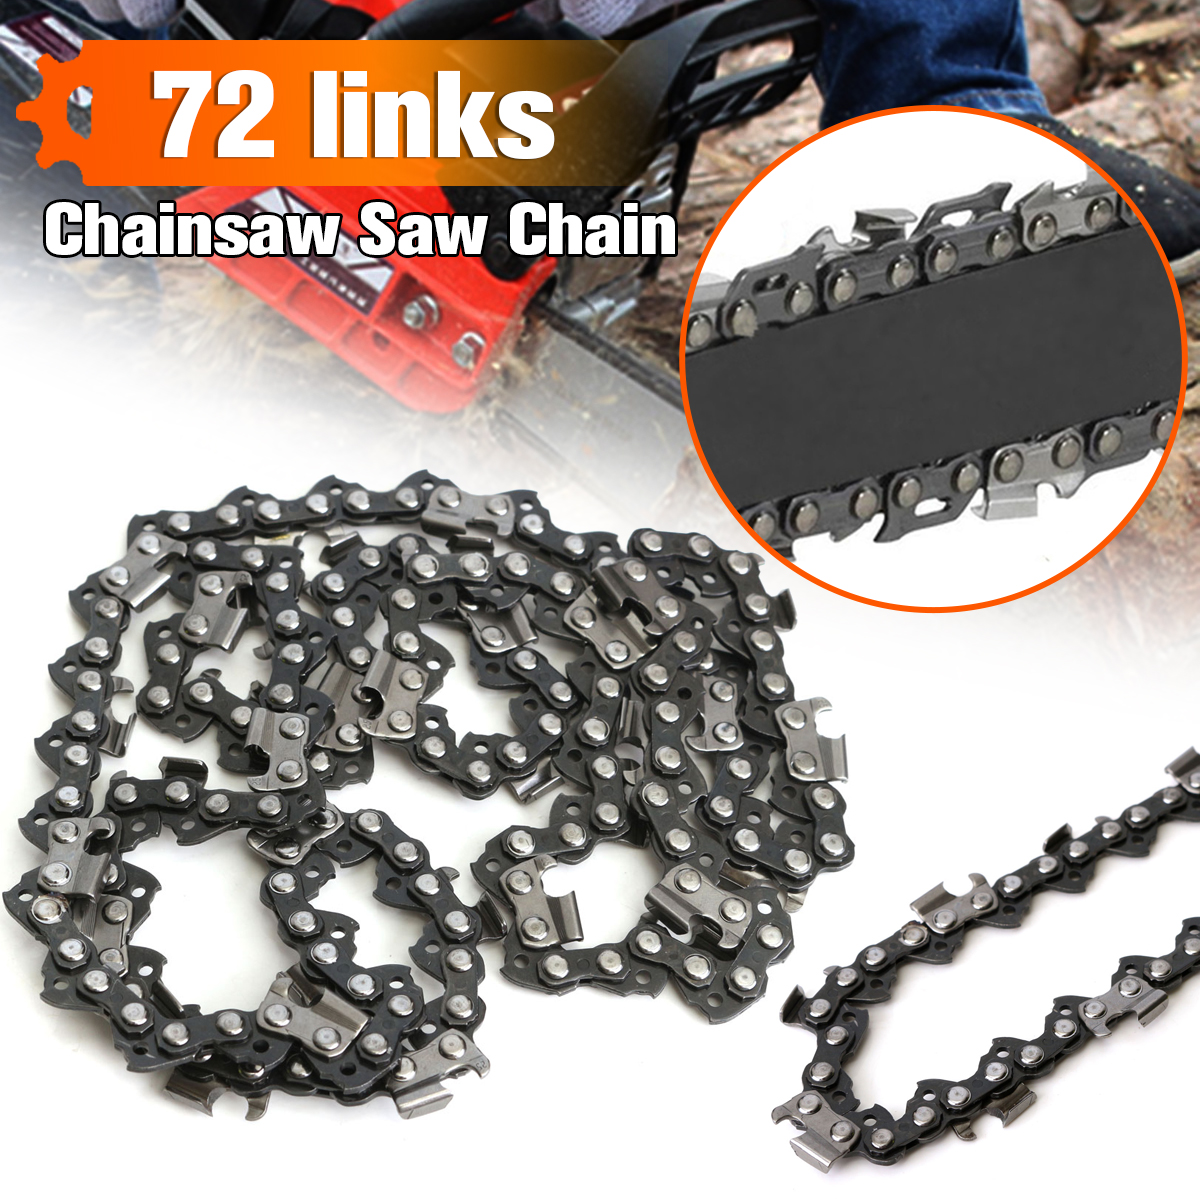 Doersupp 72 Link Chainsaw Saw Chain MetalFits For Chinese Import 4500 & 5200 etc for Use on Portable Chain Saw Mills Smooth image